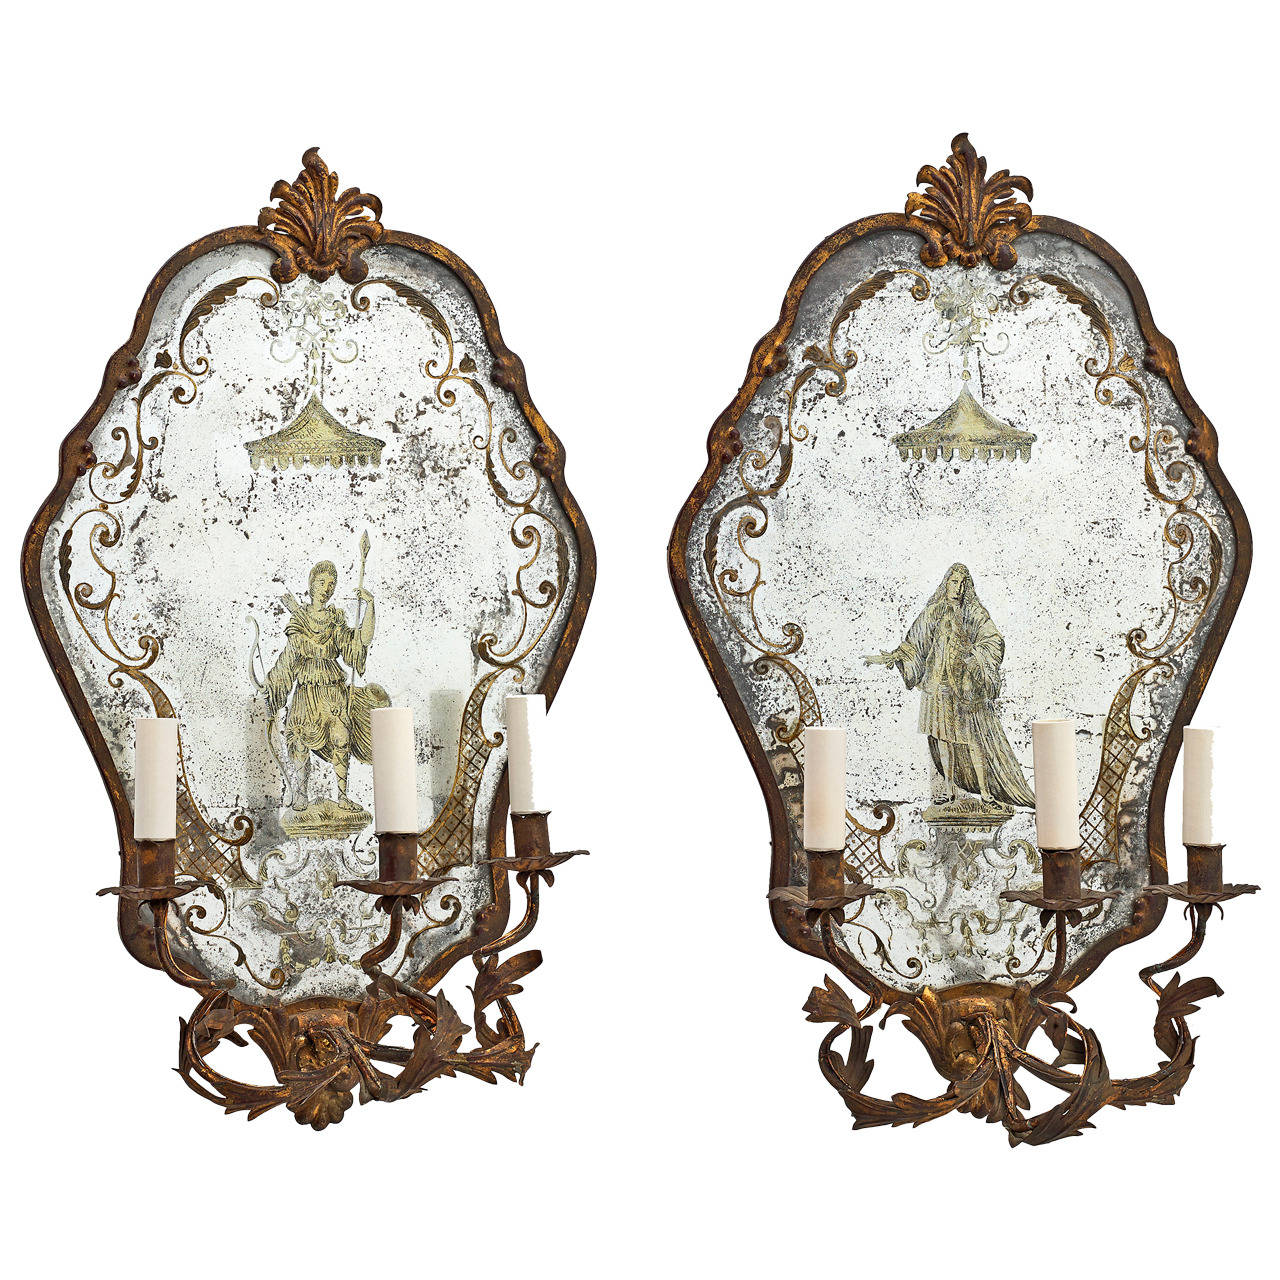 Mirrored Wall Sconce pair of italian 'Églomisé' mirrored wall sconces, circa 1950 at